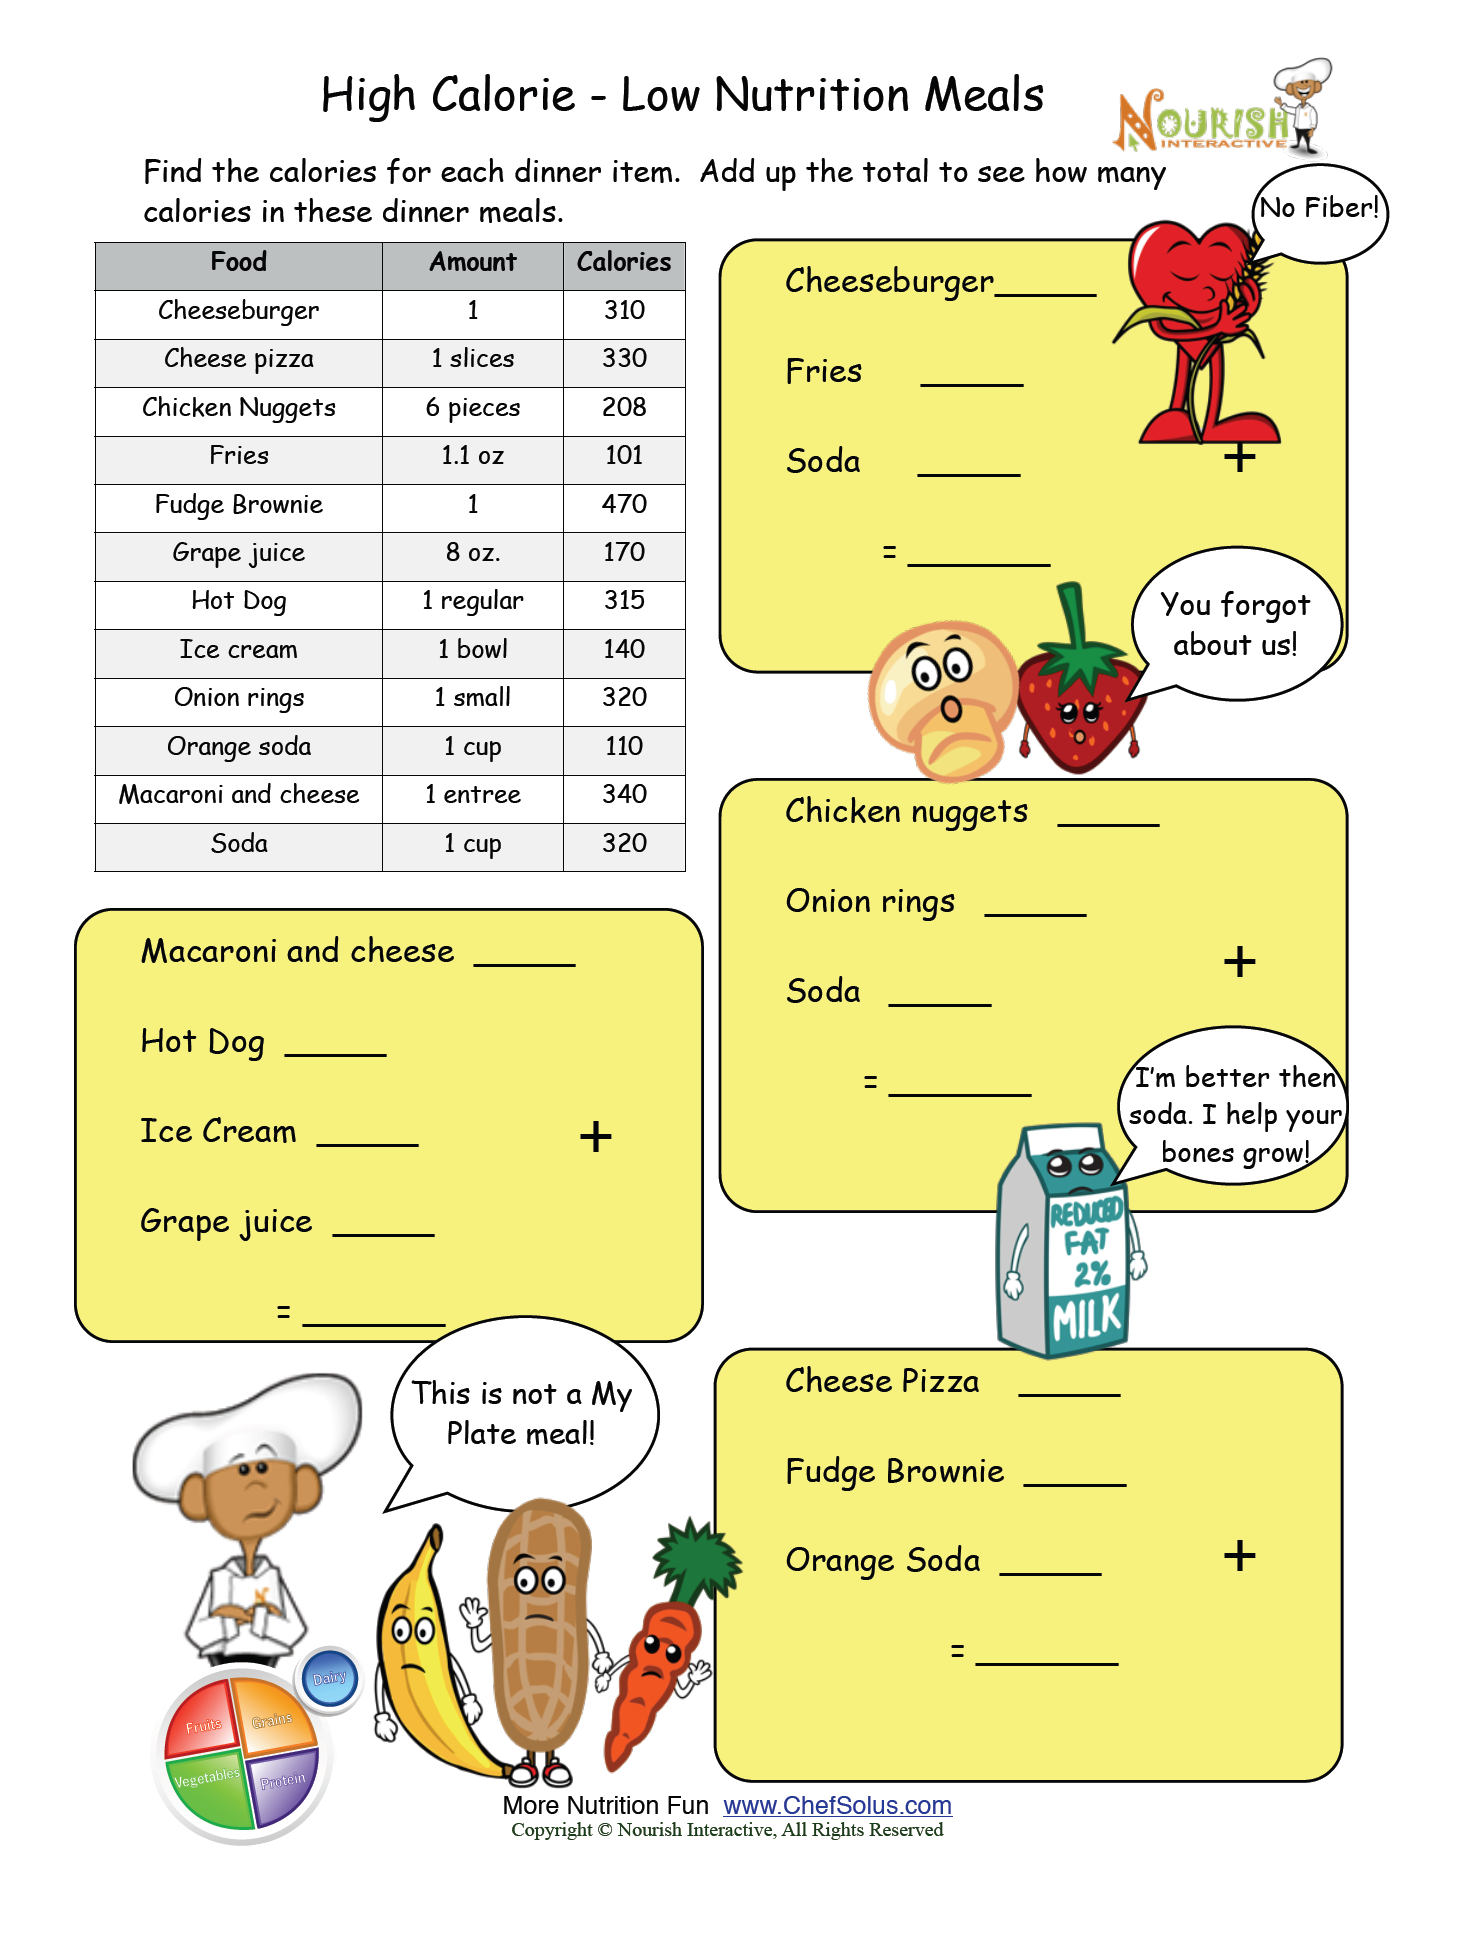 Worksheets Calorie Worksheet high calorie low nutrition meal math worksheet please make sure to print the answer